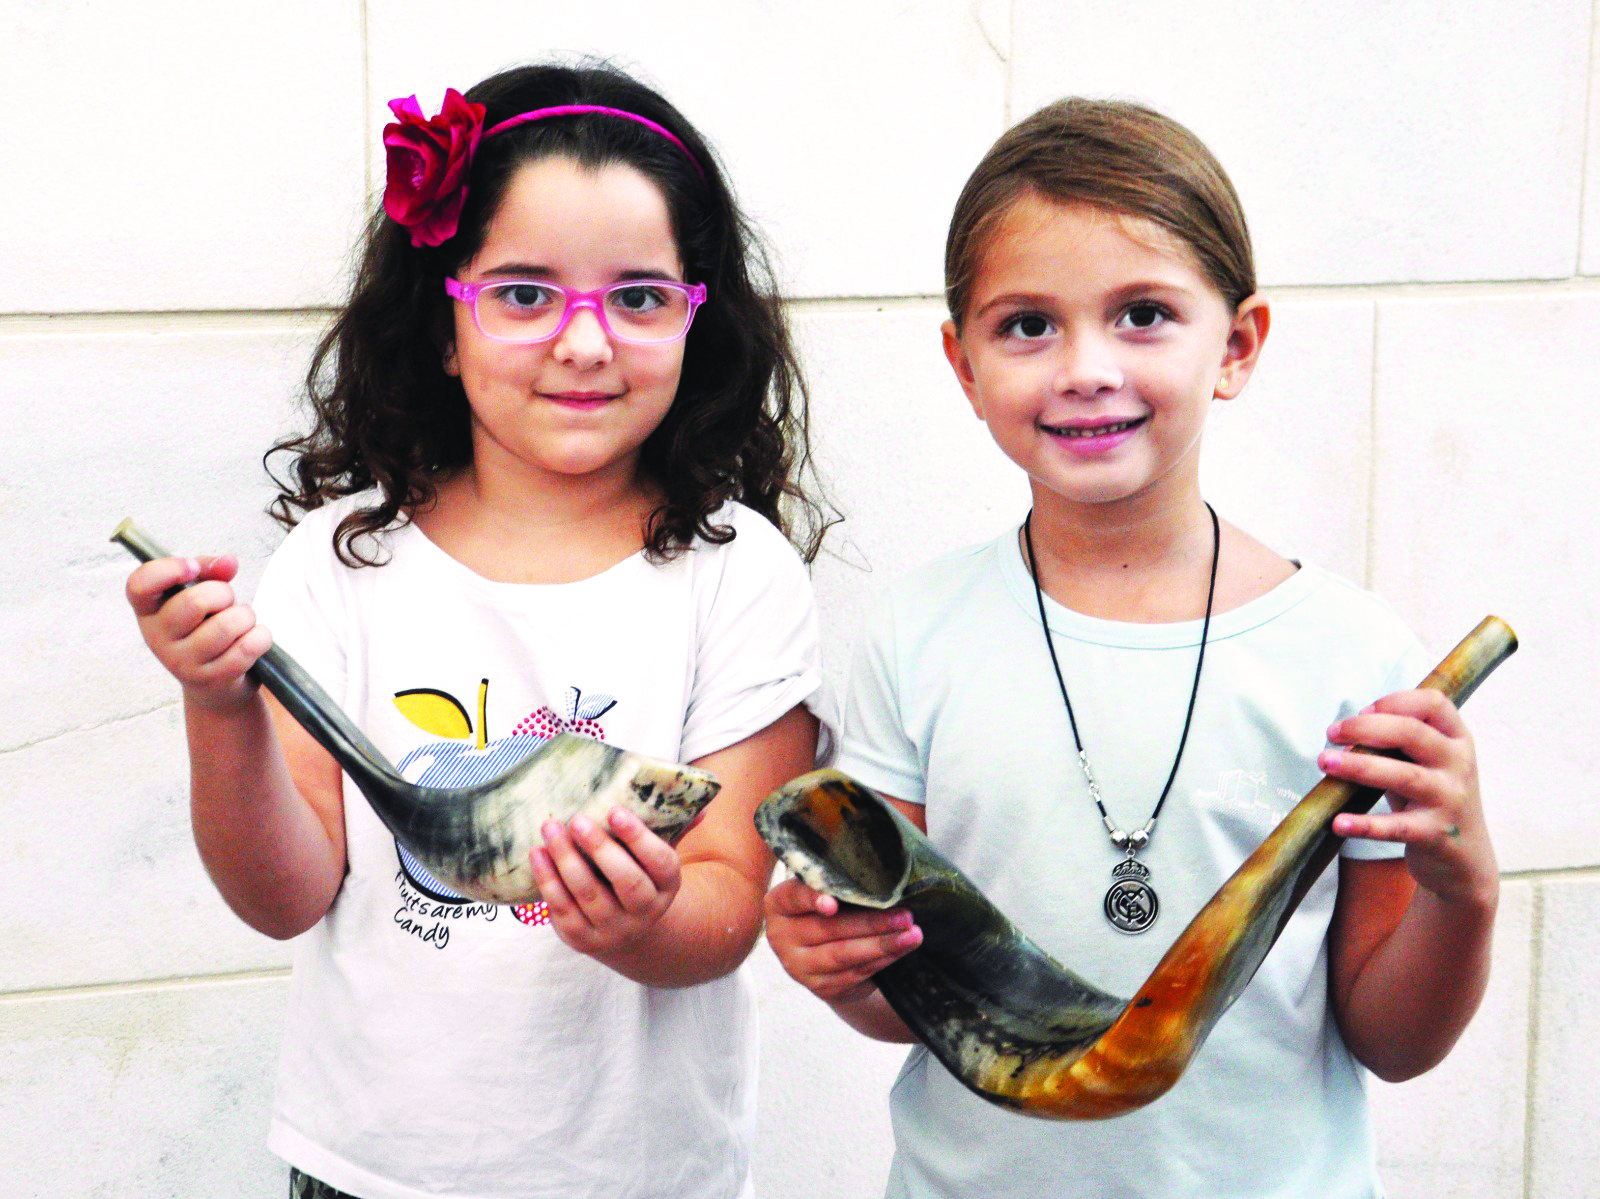 girls shofar